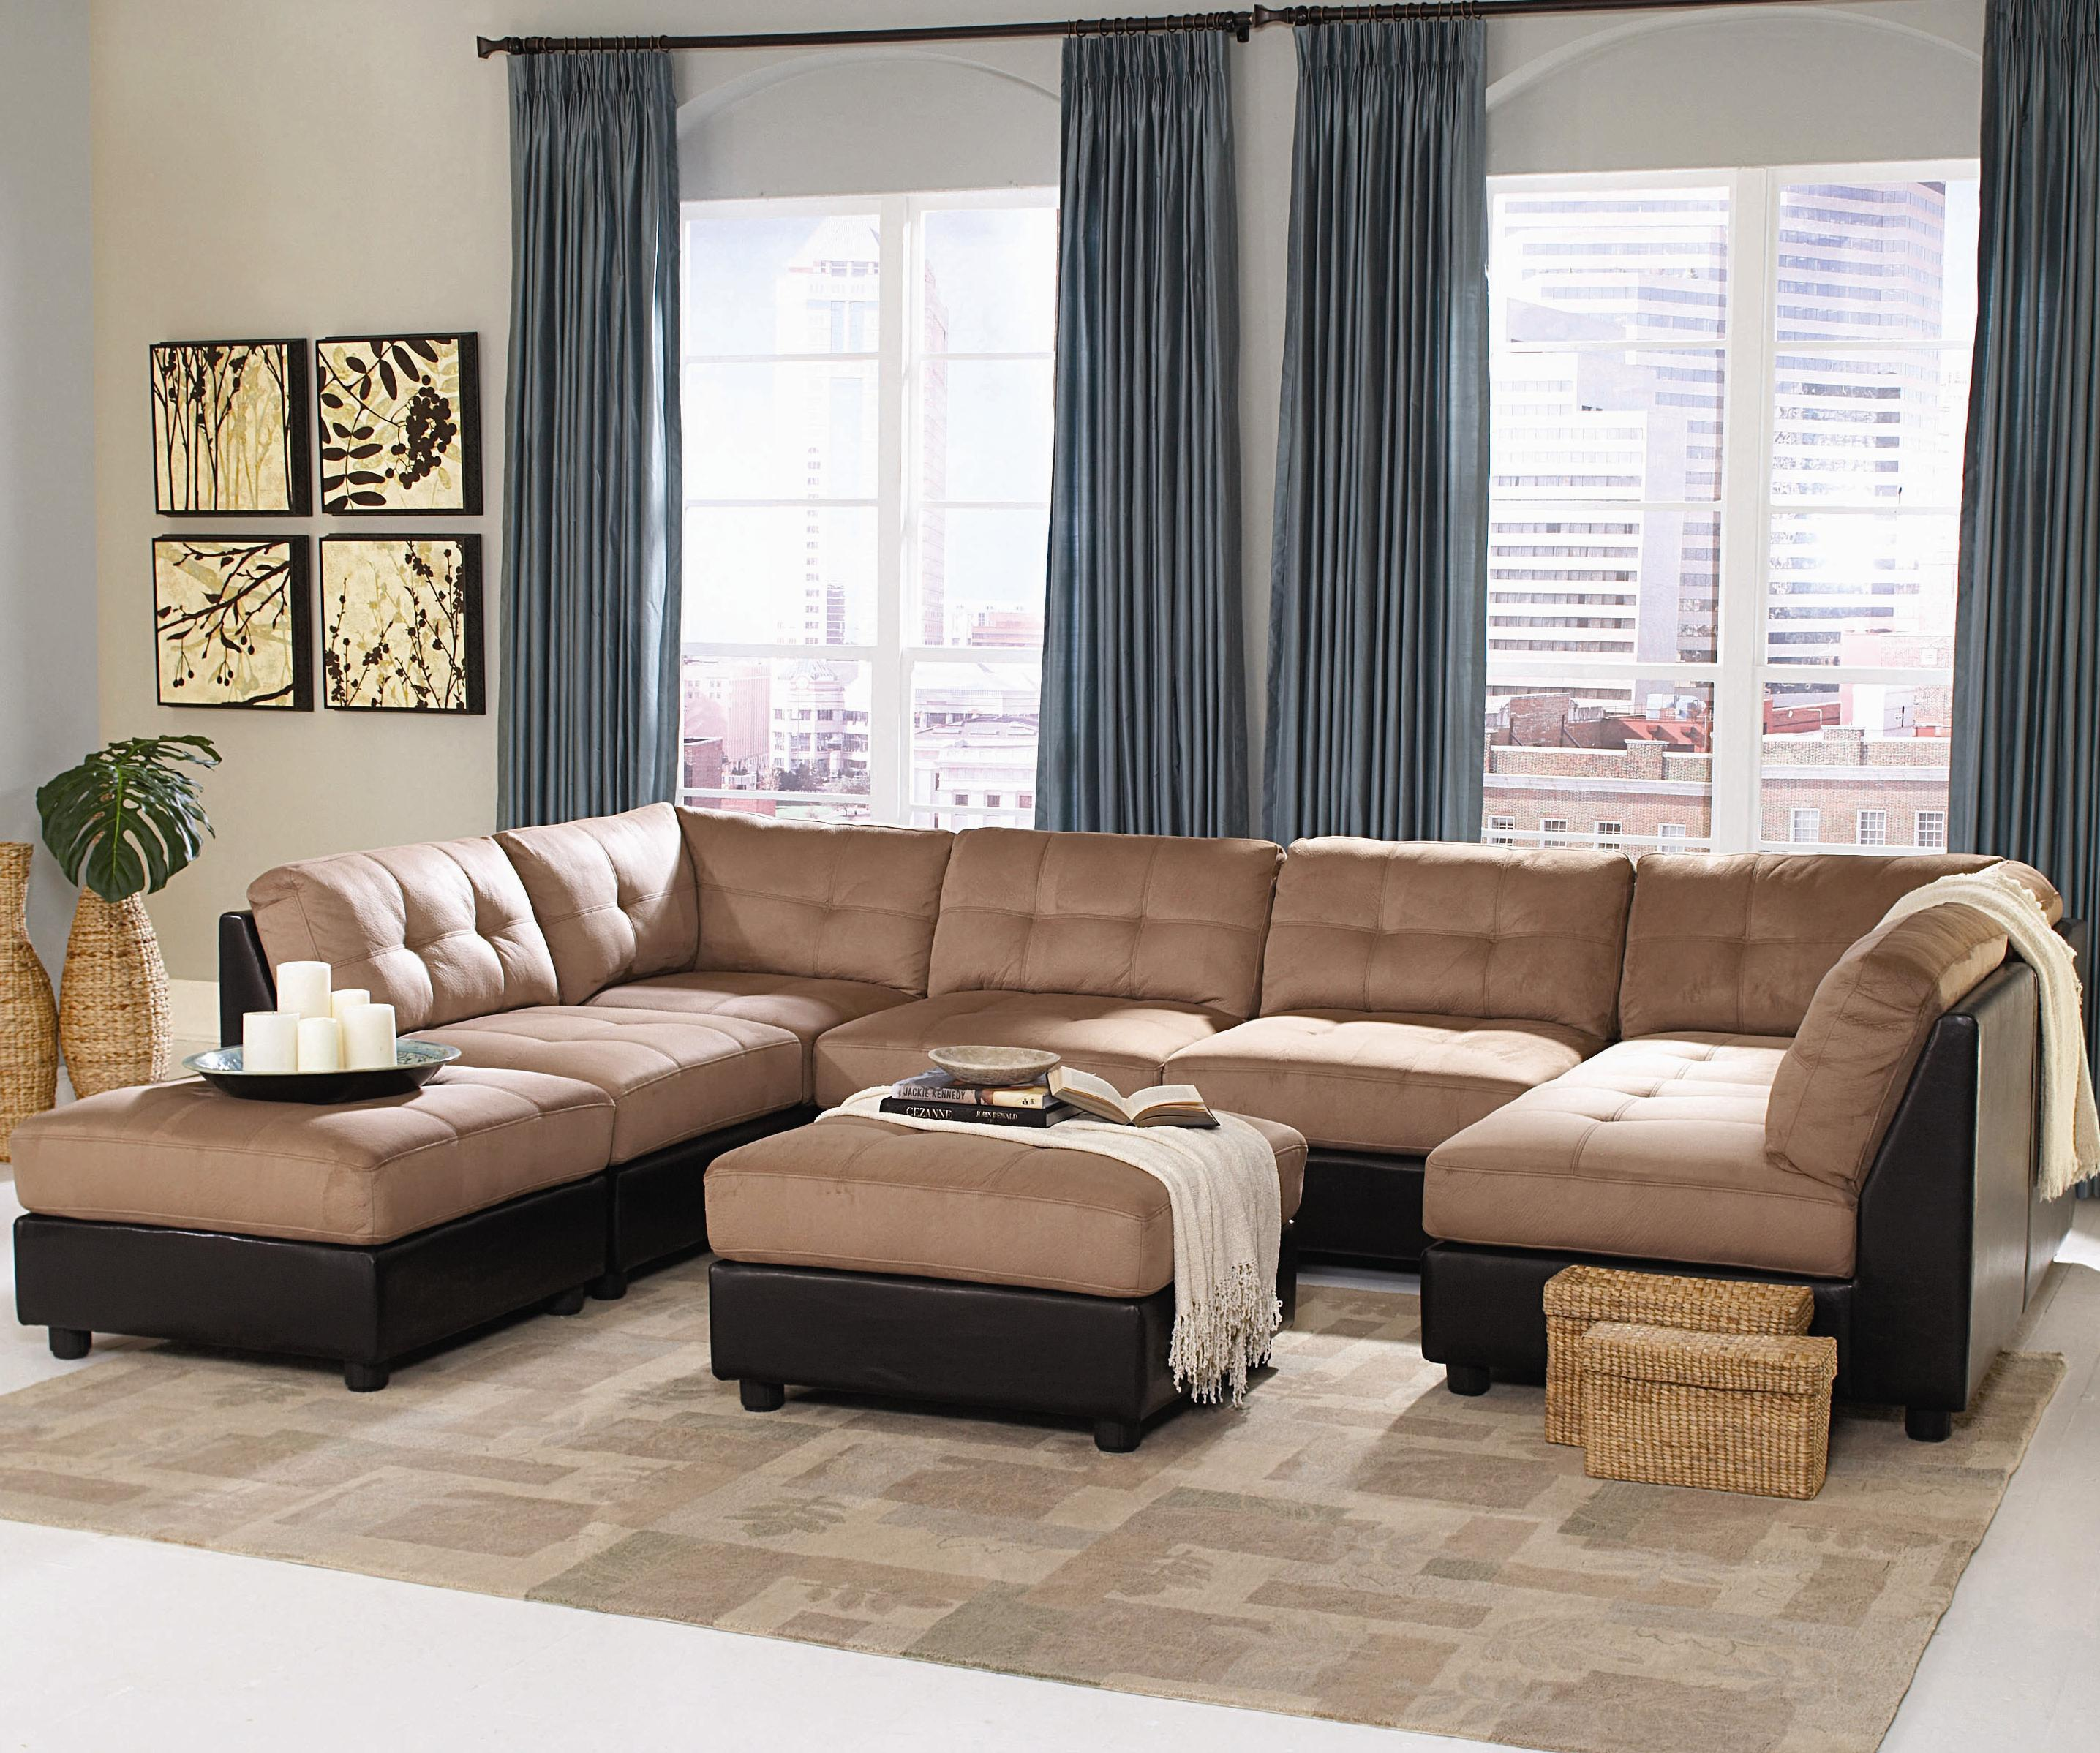 new concept b0933 3aad5 Claude Contemporary Two Tone Sectional Sofa